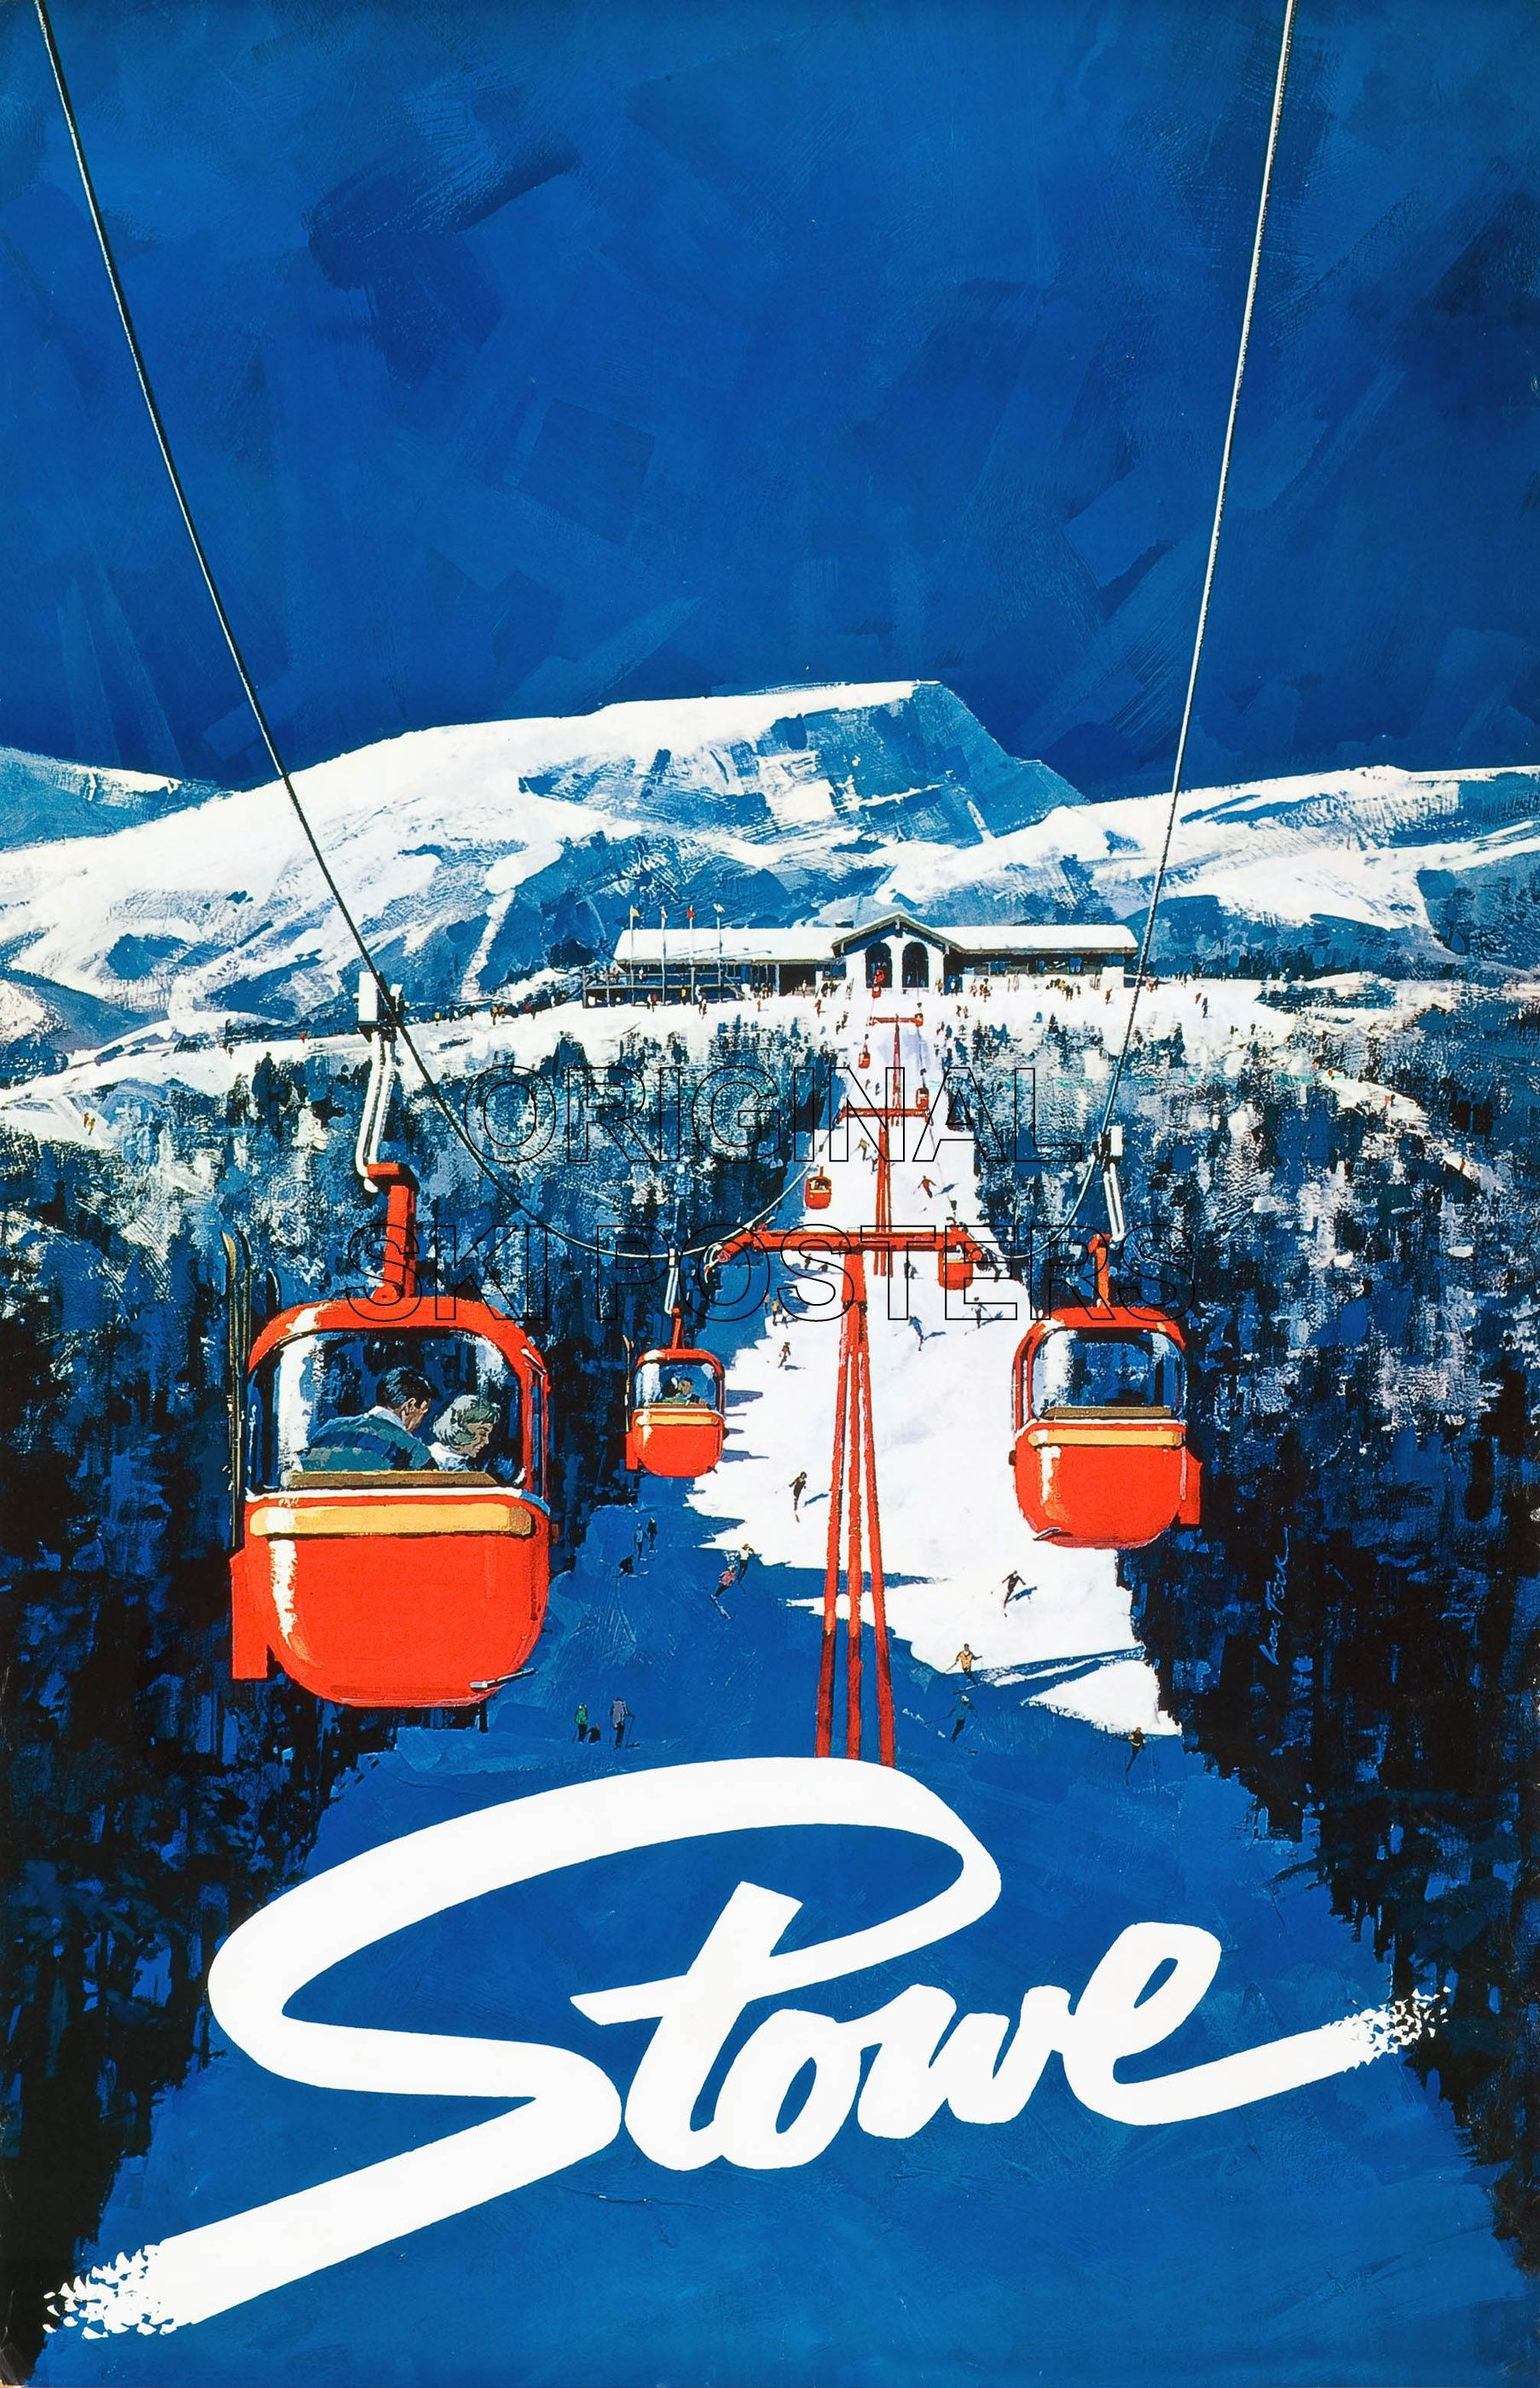 Another Stowe Vermont Vintage Poster We Love These Ski